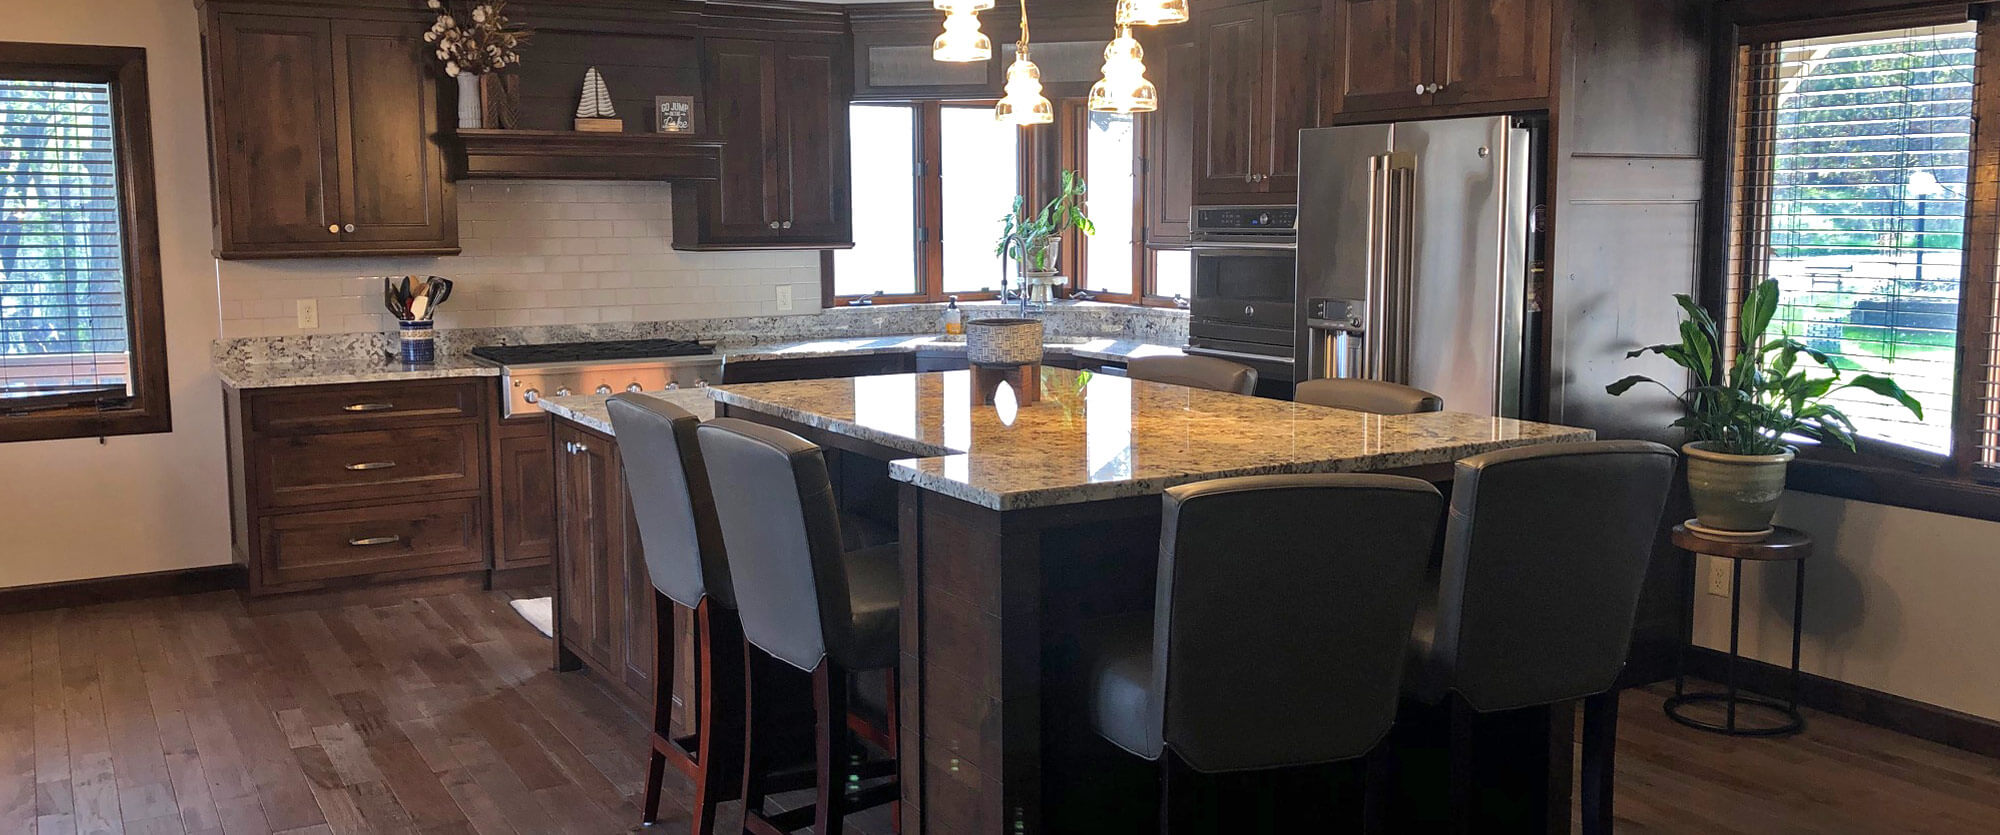 Custom kitchen cabinets made of Alder featuring a corner sink and large center island; designed, built, and installed by finewood Structures of Browerville, MN